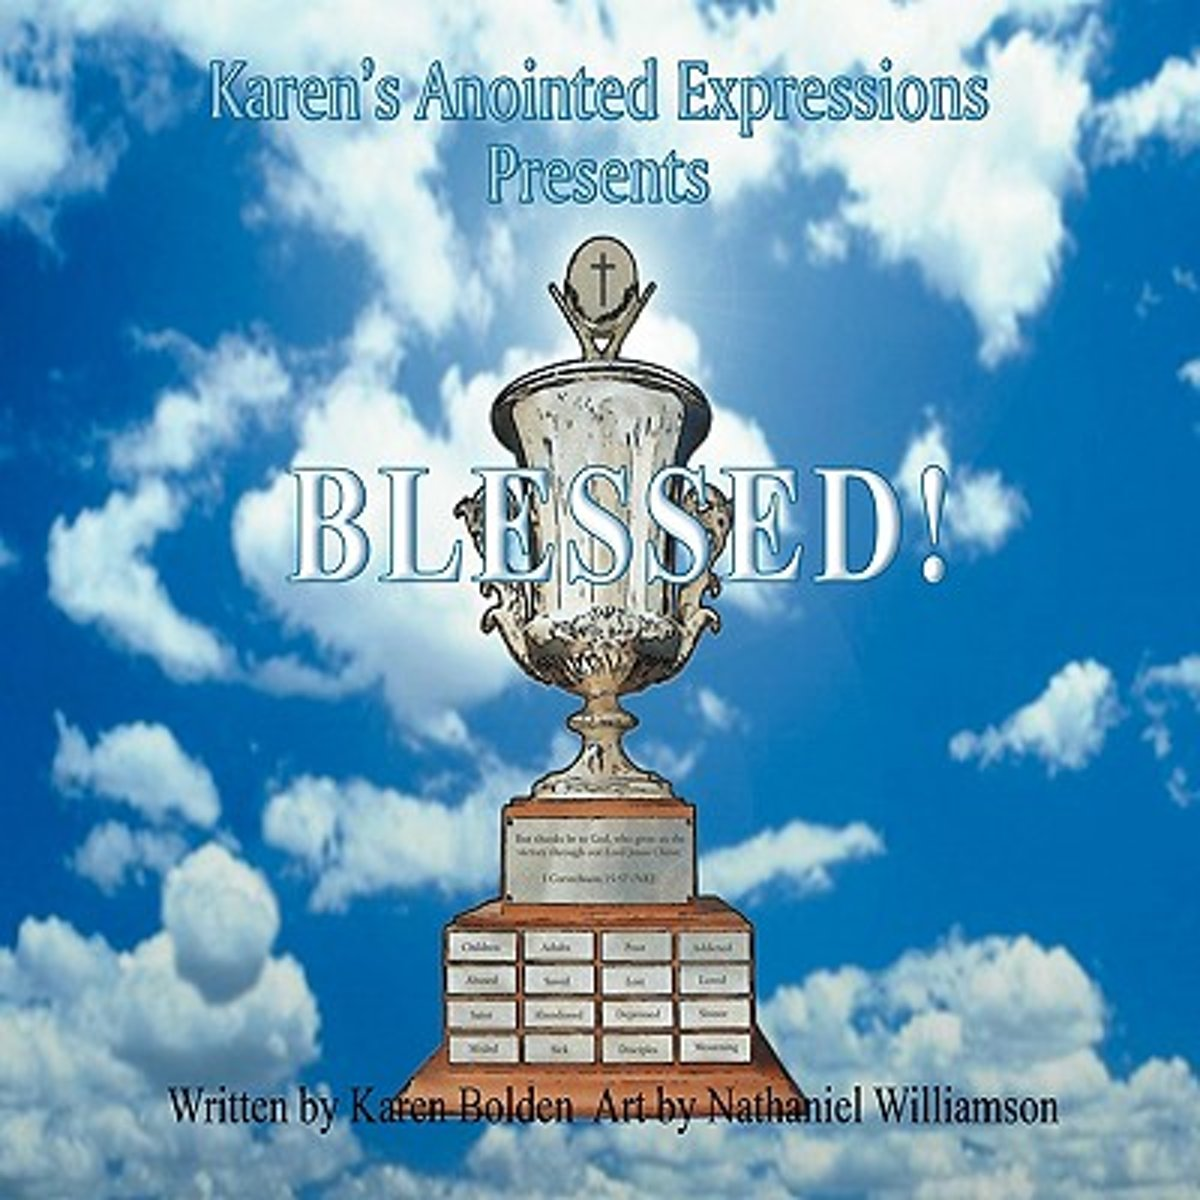 Karen's Anointed Expressions Presents Blessed